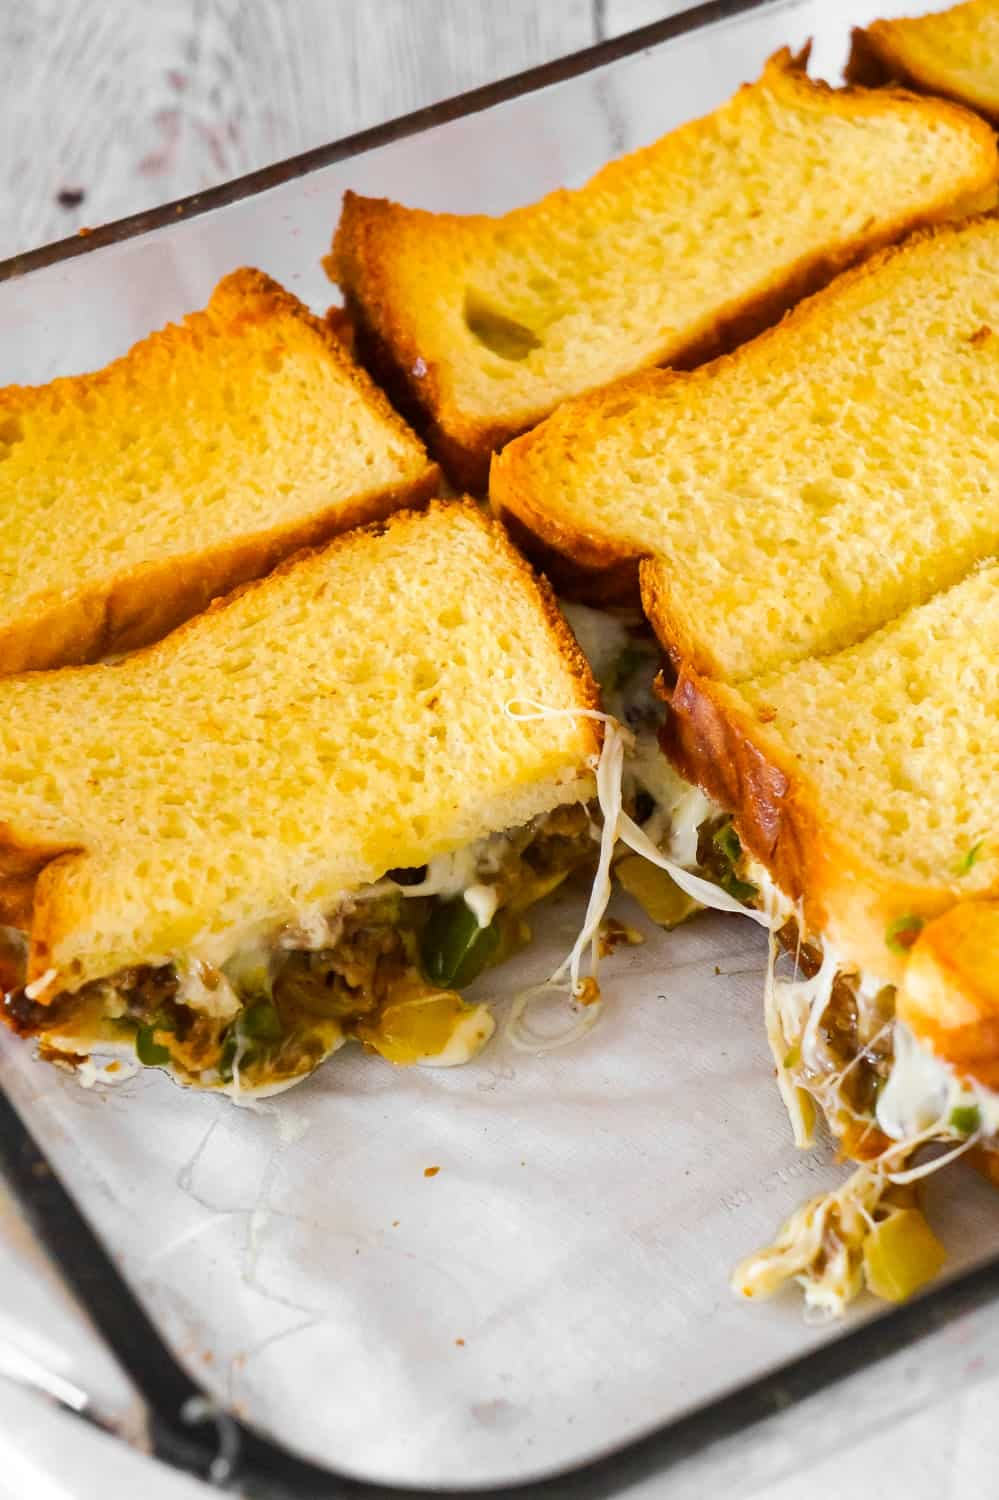 Philly Cheese Steak Grilled Cheese Casserole is a fun twist on a classic sandwich. This simple and delicious casserole is loaded with roast beef, green peppers, onions and oozing with mozzarella cheese.